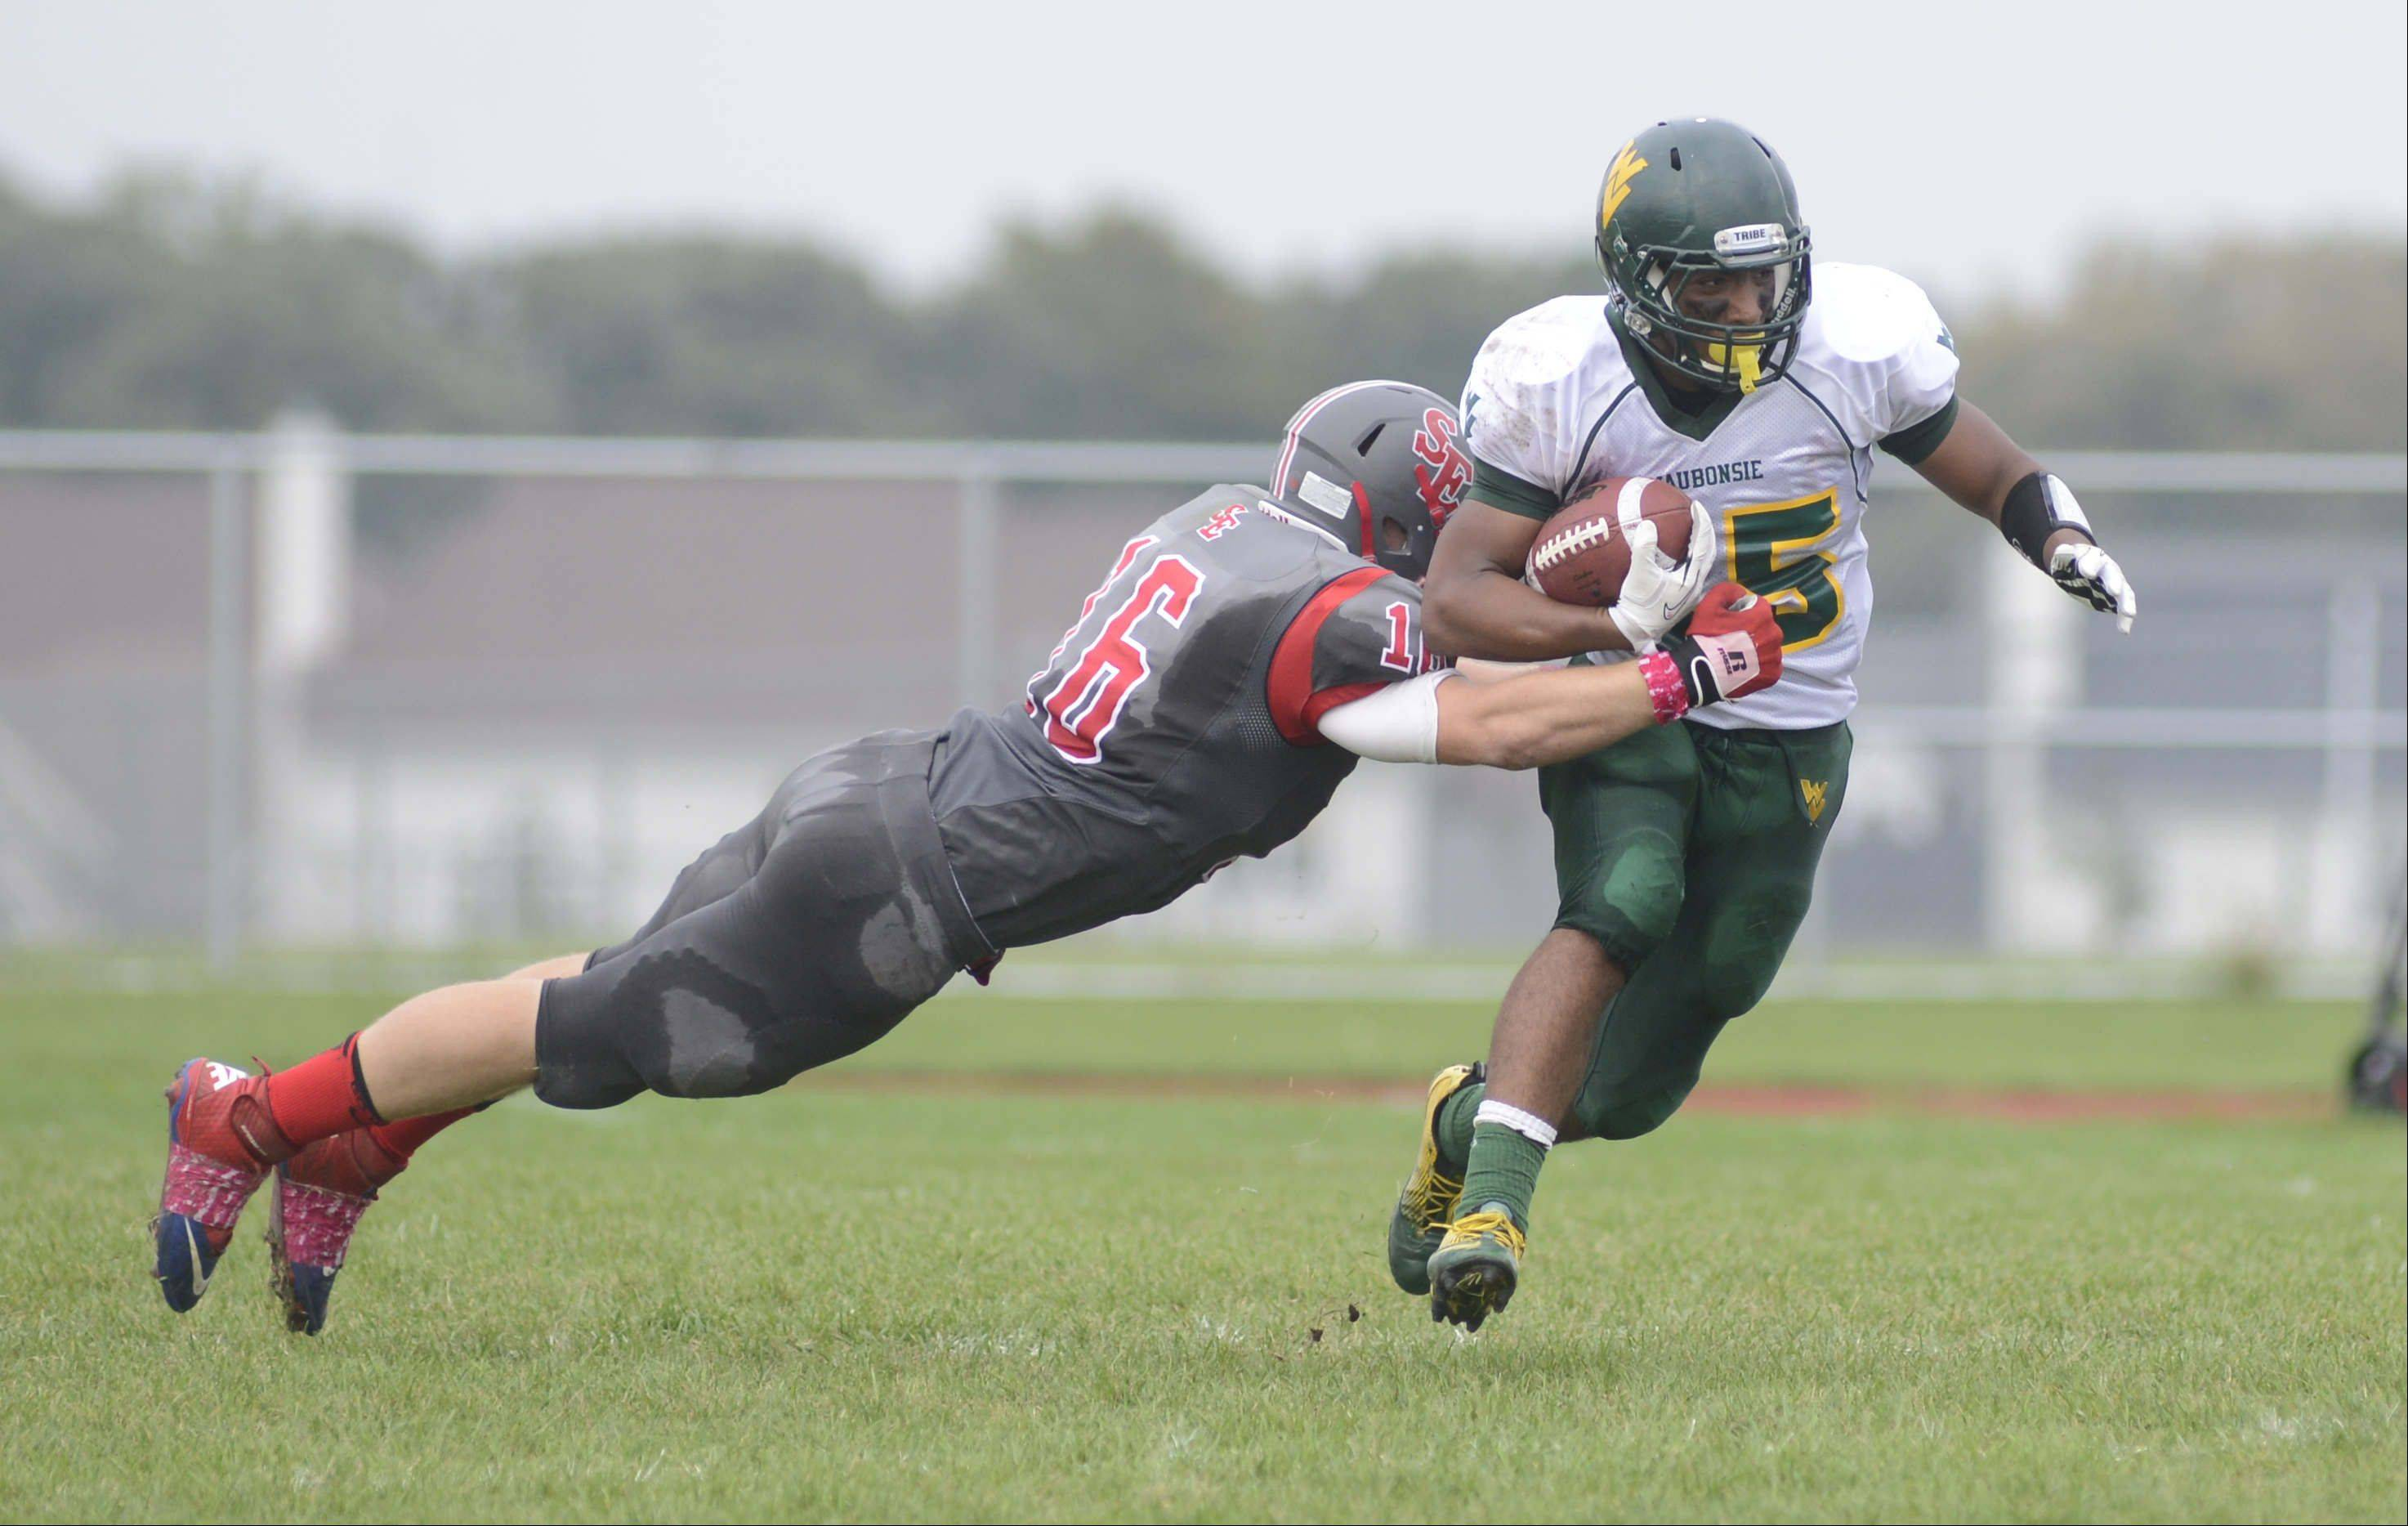 Week six - Images from the Waubonsie Valley vs. South Elgin football game Saturday, October 5, 2013.